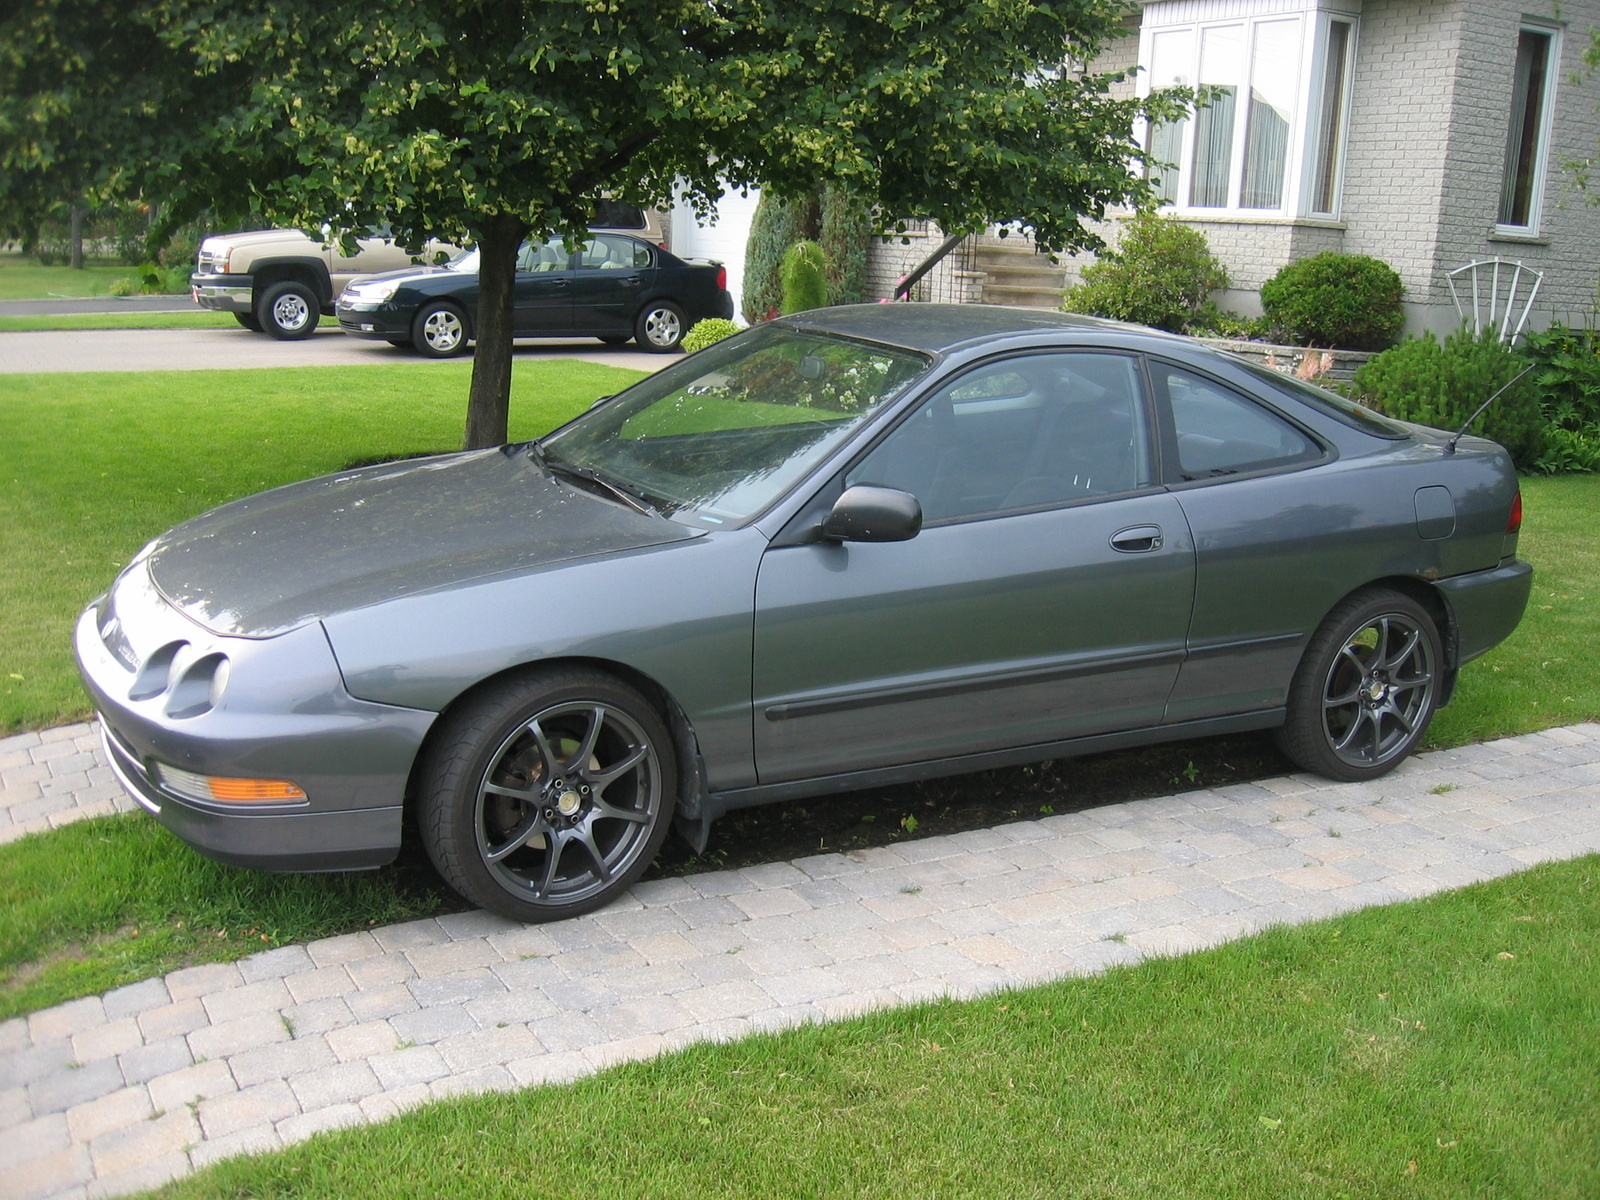 1994 Acura Integra submited images.